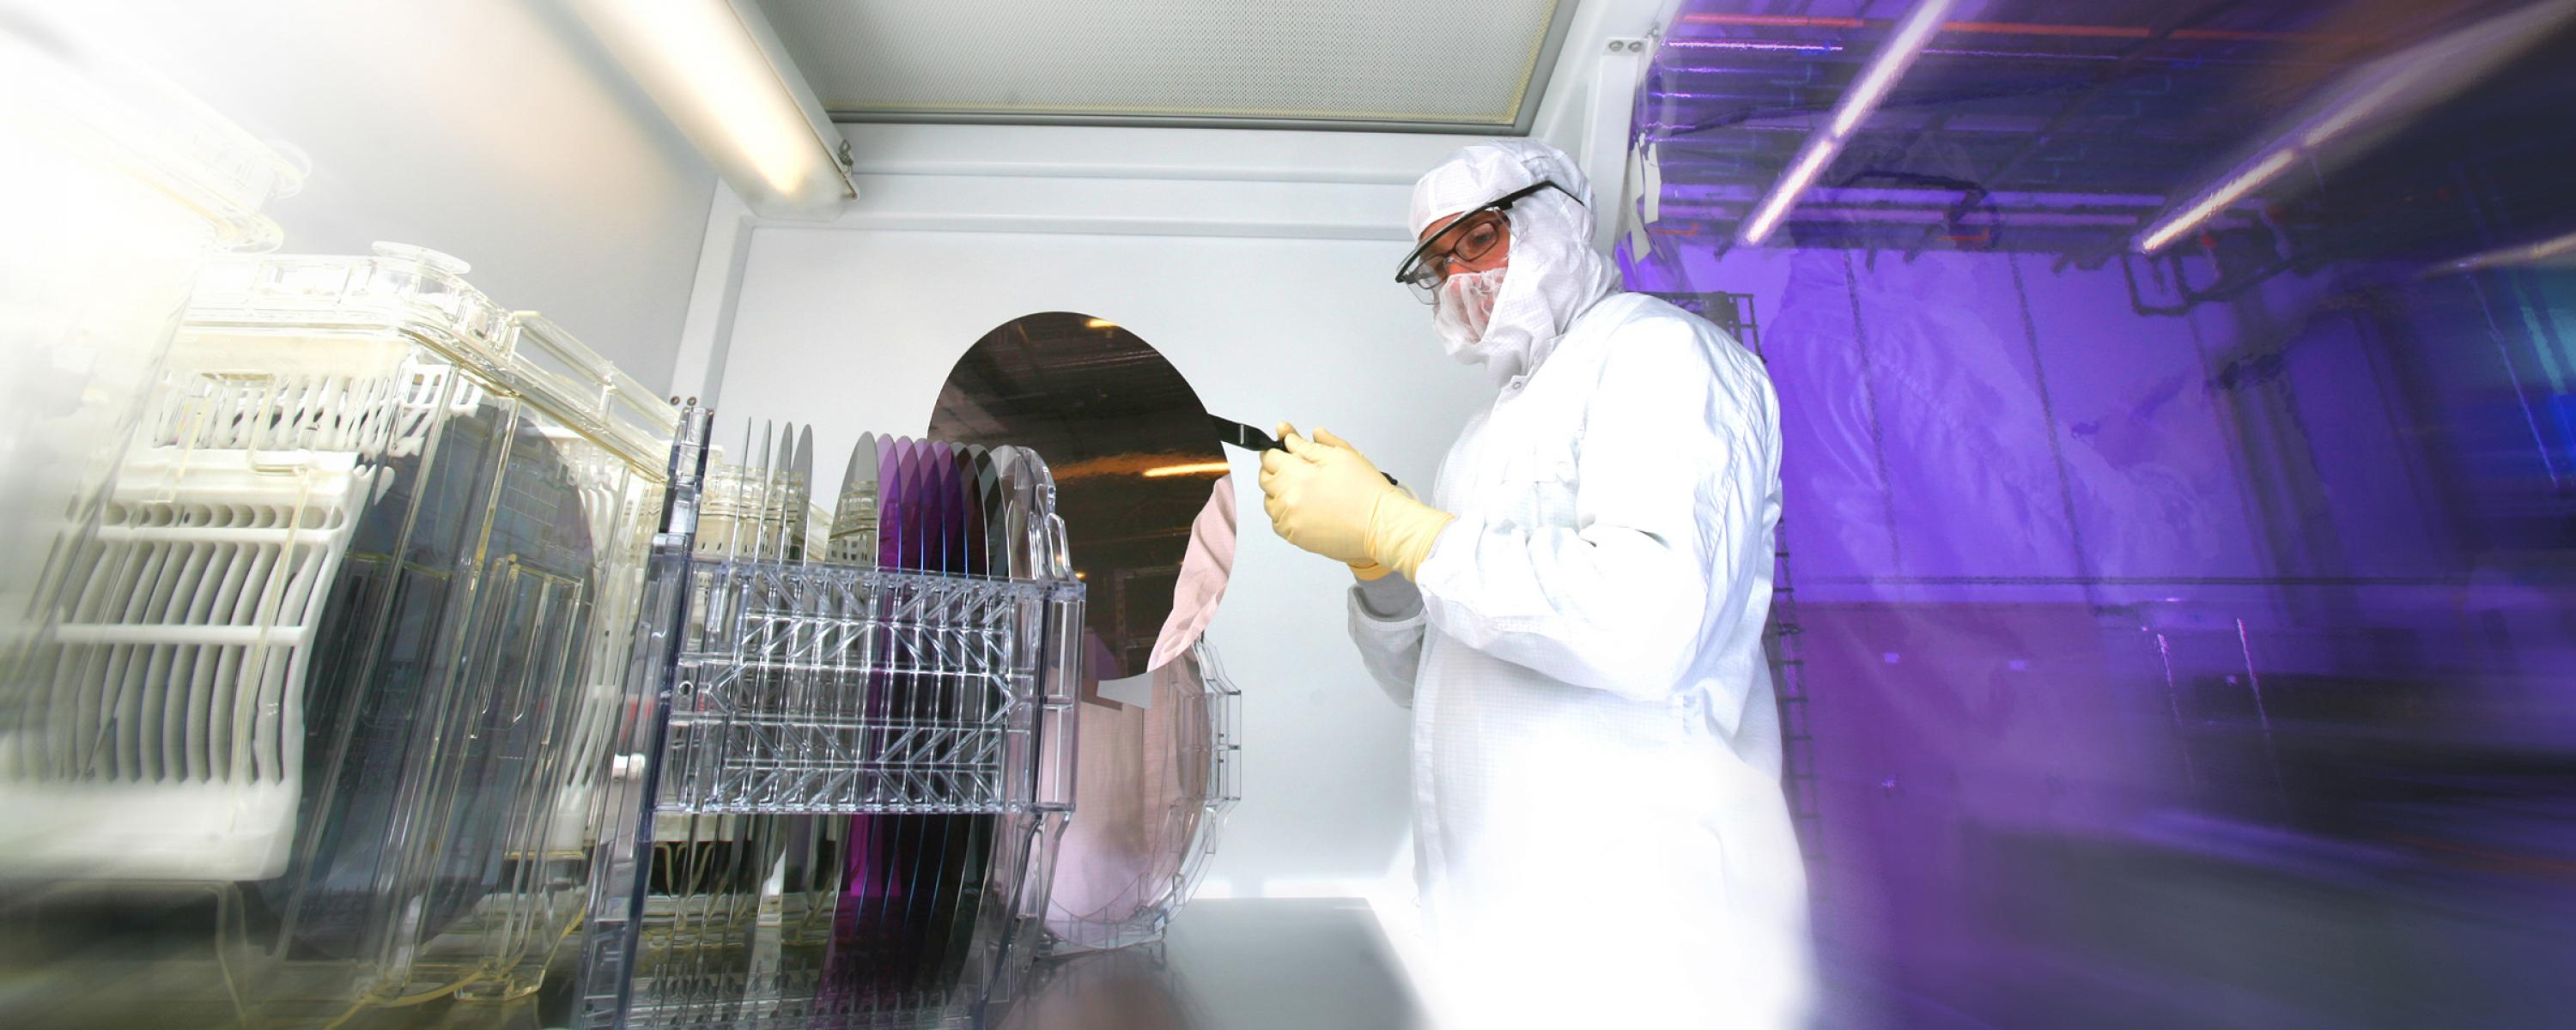 Image of SUNY Poly scientist in nano lab.